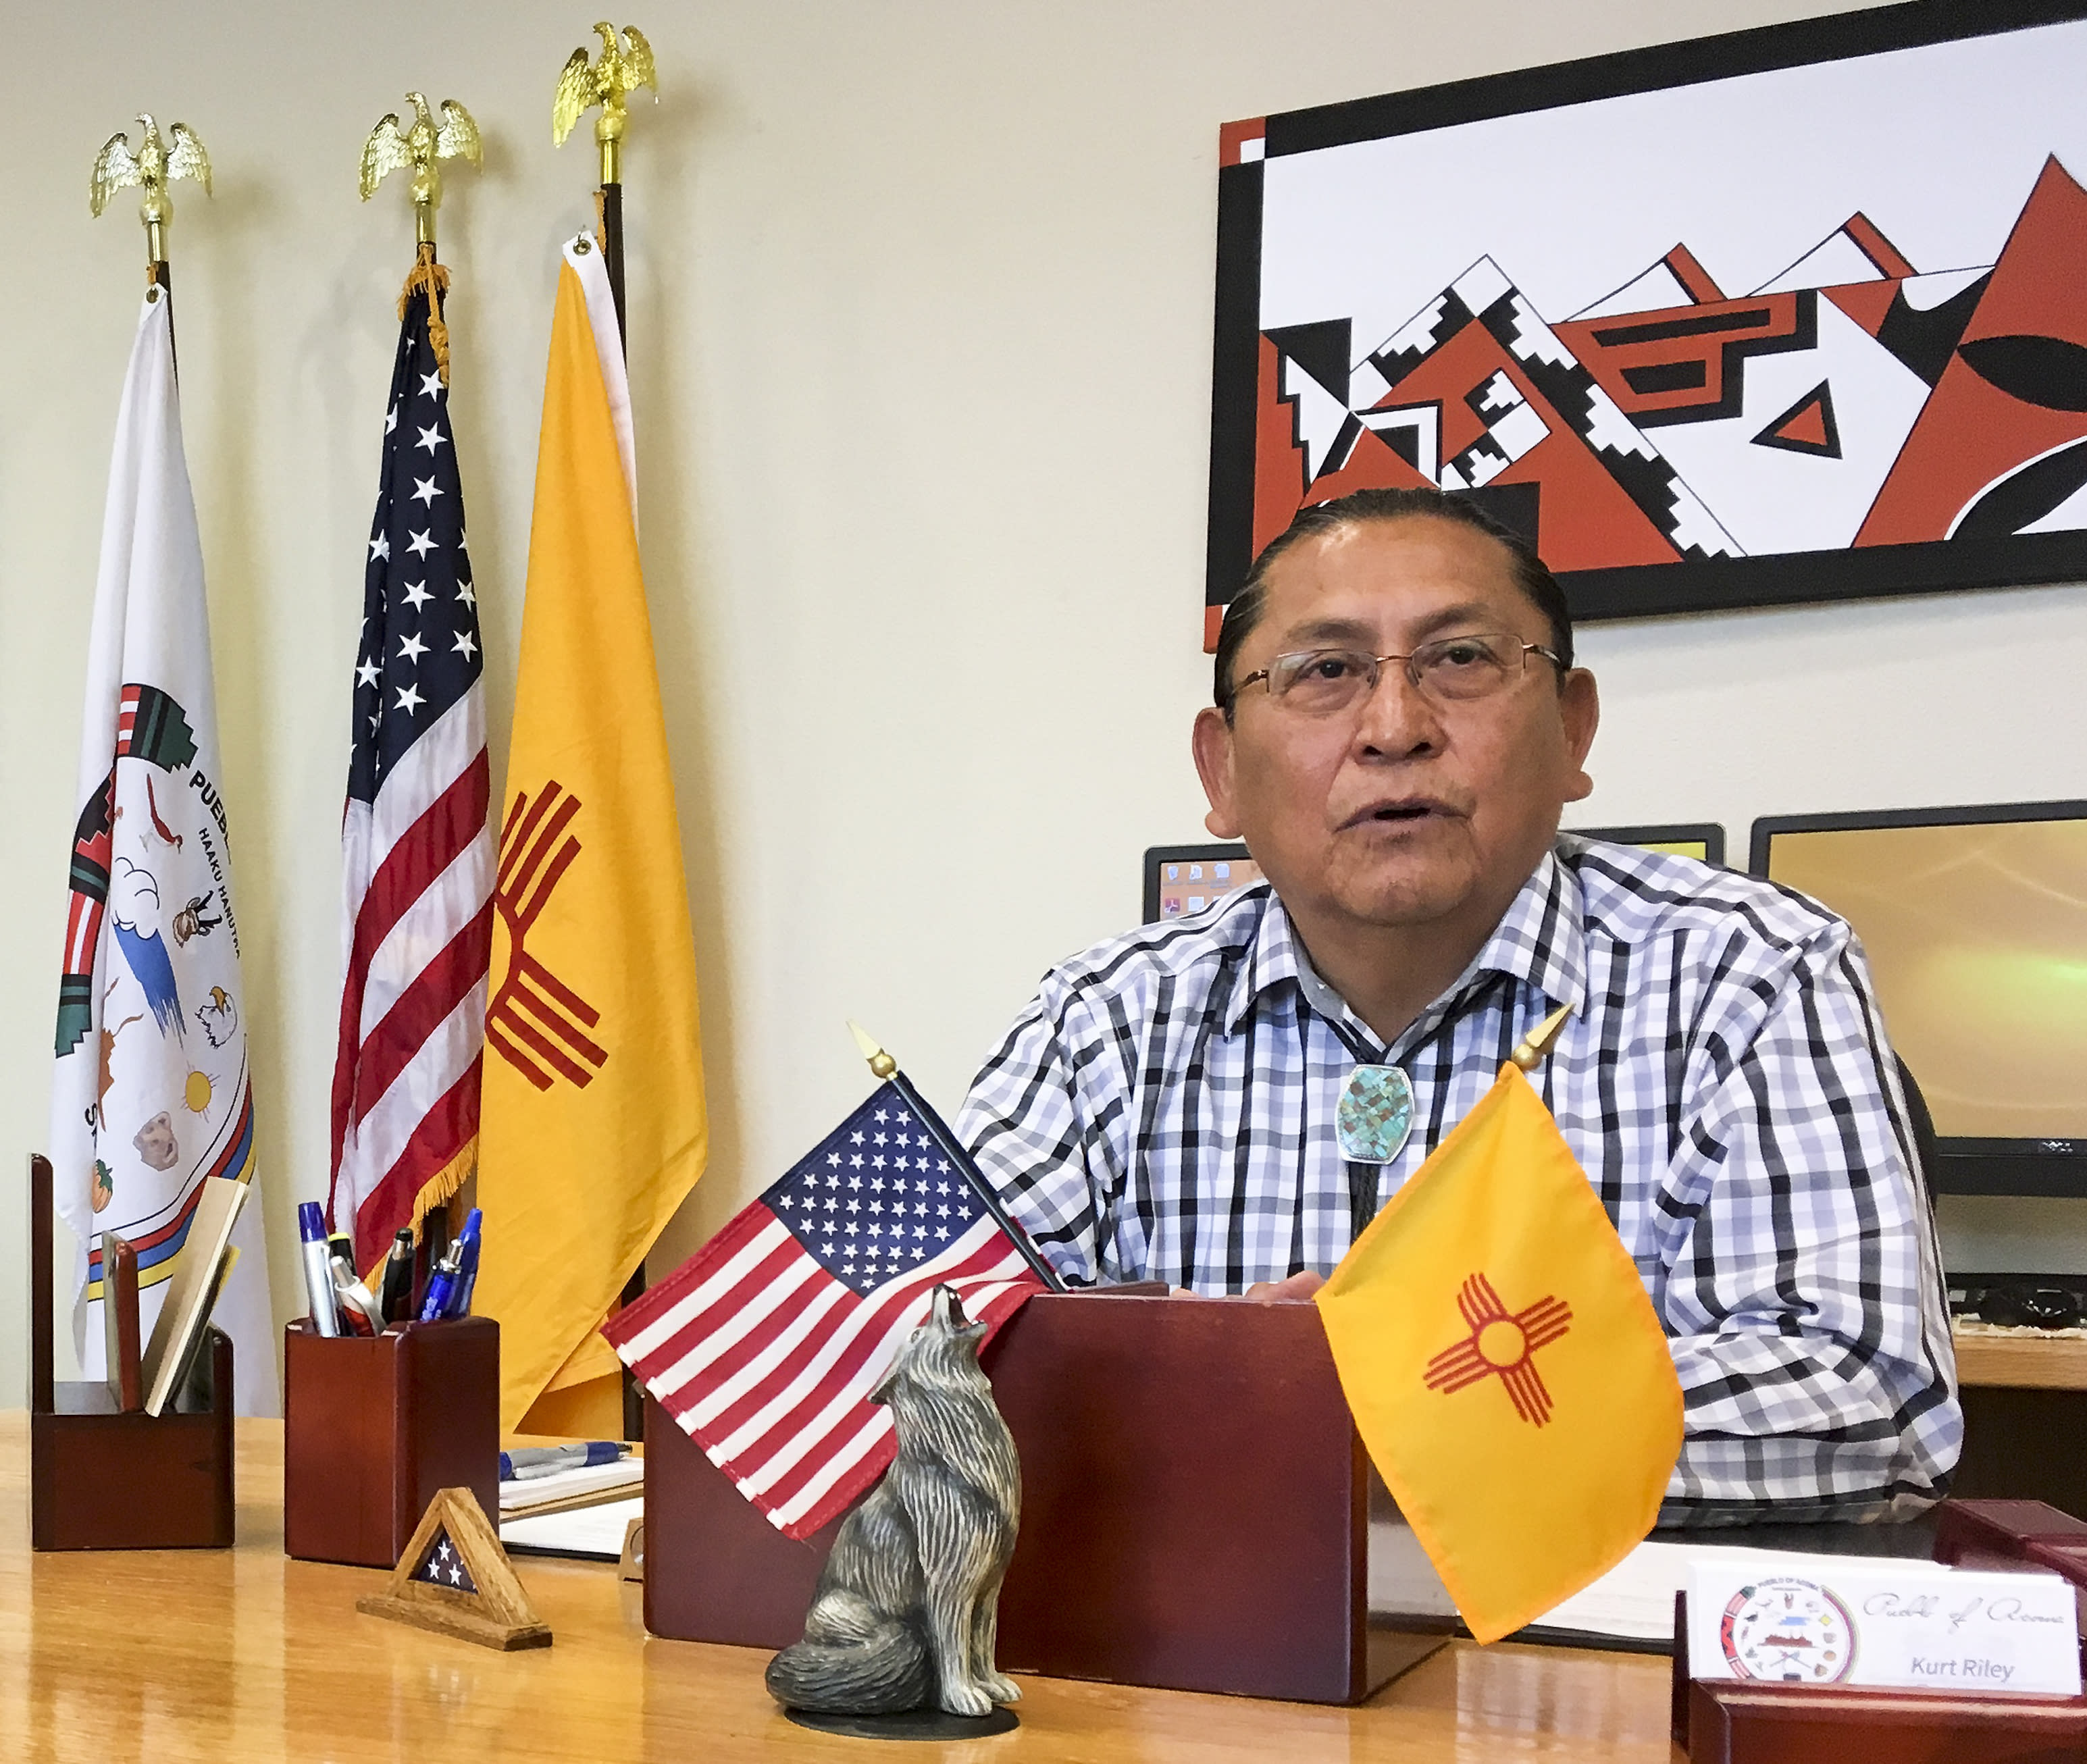 FILE - In this June 8, 2016, photo, Gov. Kurt Riley, of Acoma Pueblo, discusses his tribe's move to repatriate a ceremonial shield from Paris, France, during an interview in Acoma Pueblo, N.M. A ceremonial shield has been returned to New Mexico more than three years after it became central to an international debate over the export of Native American items. U.S. and Acoma Pueblo officials planned Monday, Nov. 18, 2019, to announce the shield's return from Paris, where it had been listed for bidding in 2016 before the EVE auction house took the rare step of halting its sale. (AP Photo/Mary Hudetz, File)